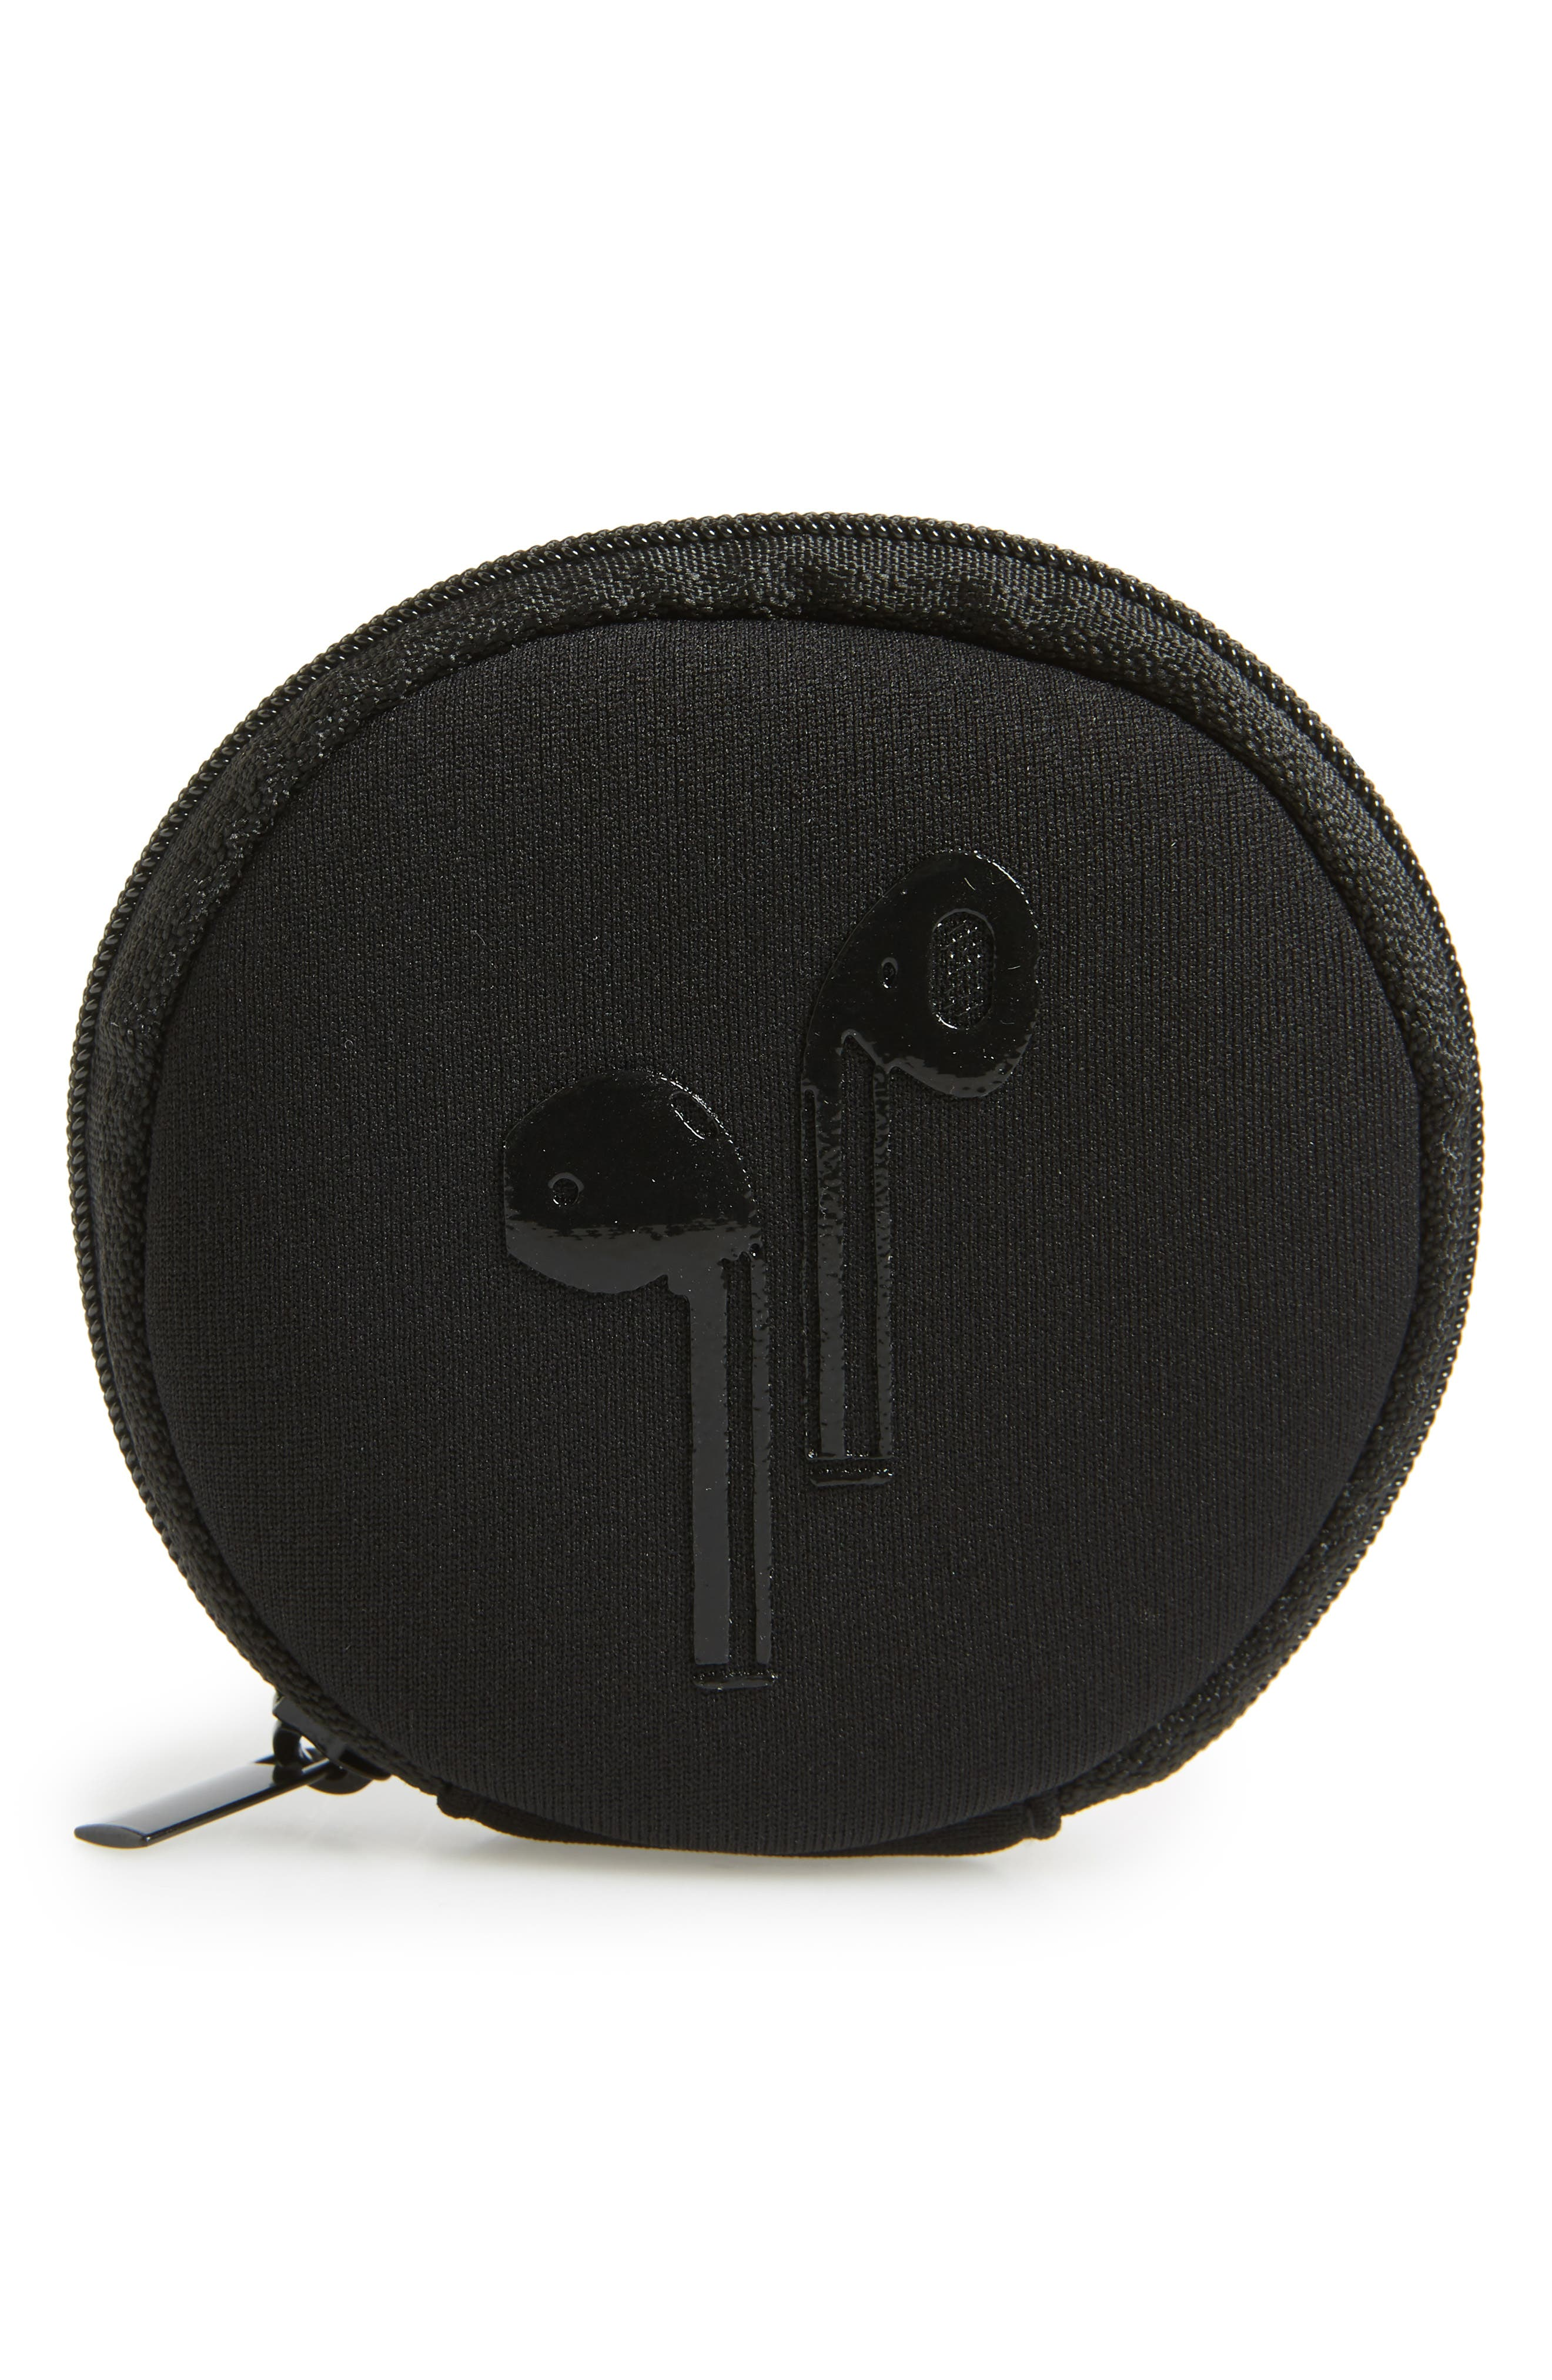 Neoprene Earbuds Case,                             Main thumbnail 1, color,                             BLACK